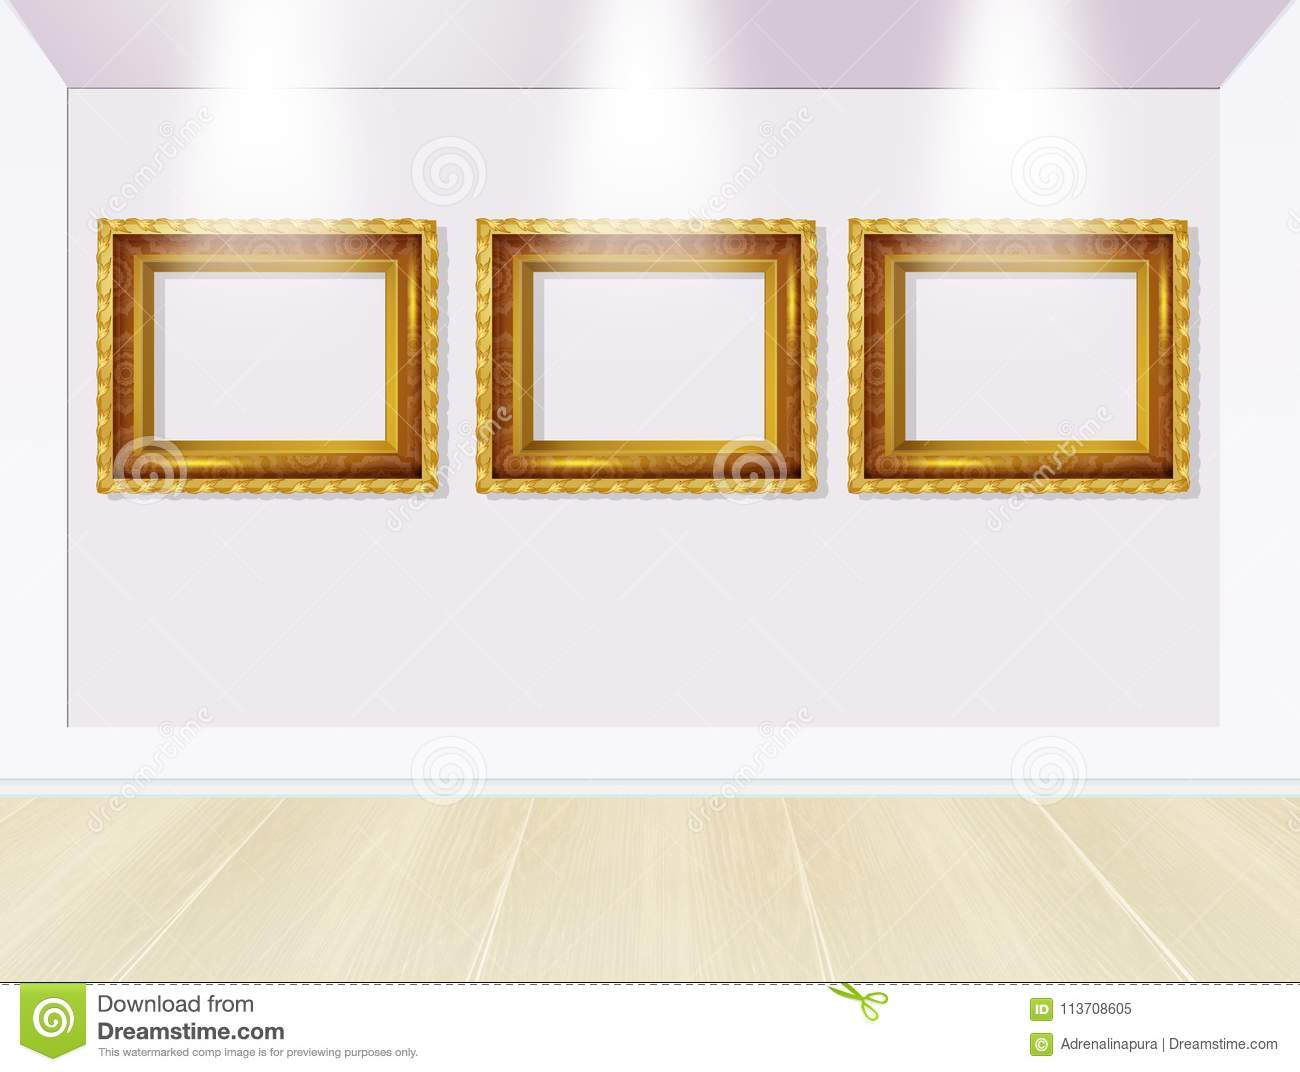 Frames in art gallery stock illustration. Illustration of gold ...